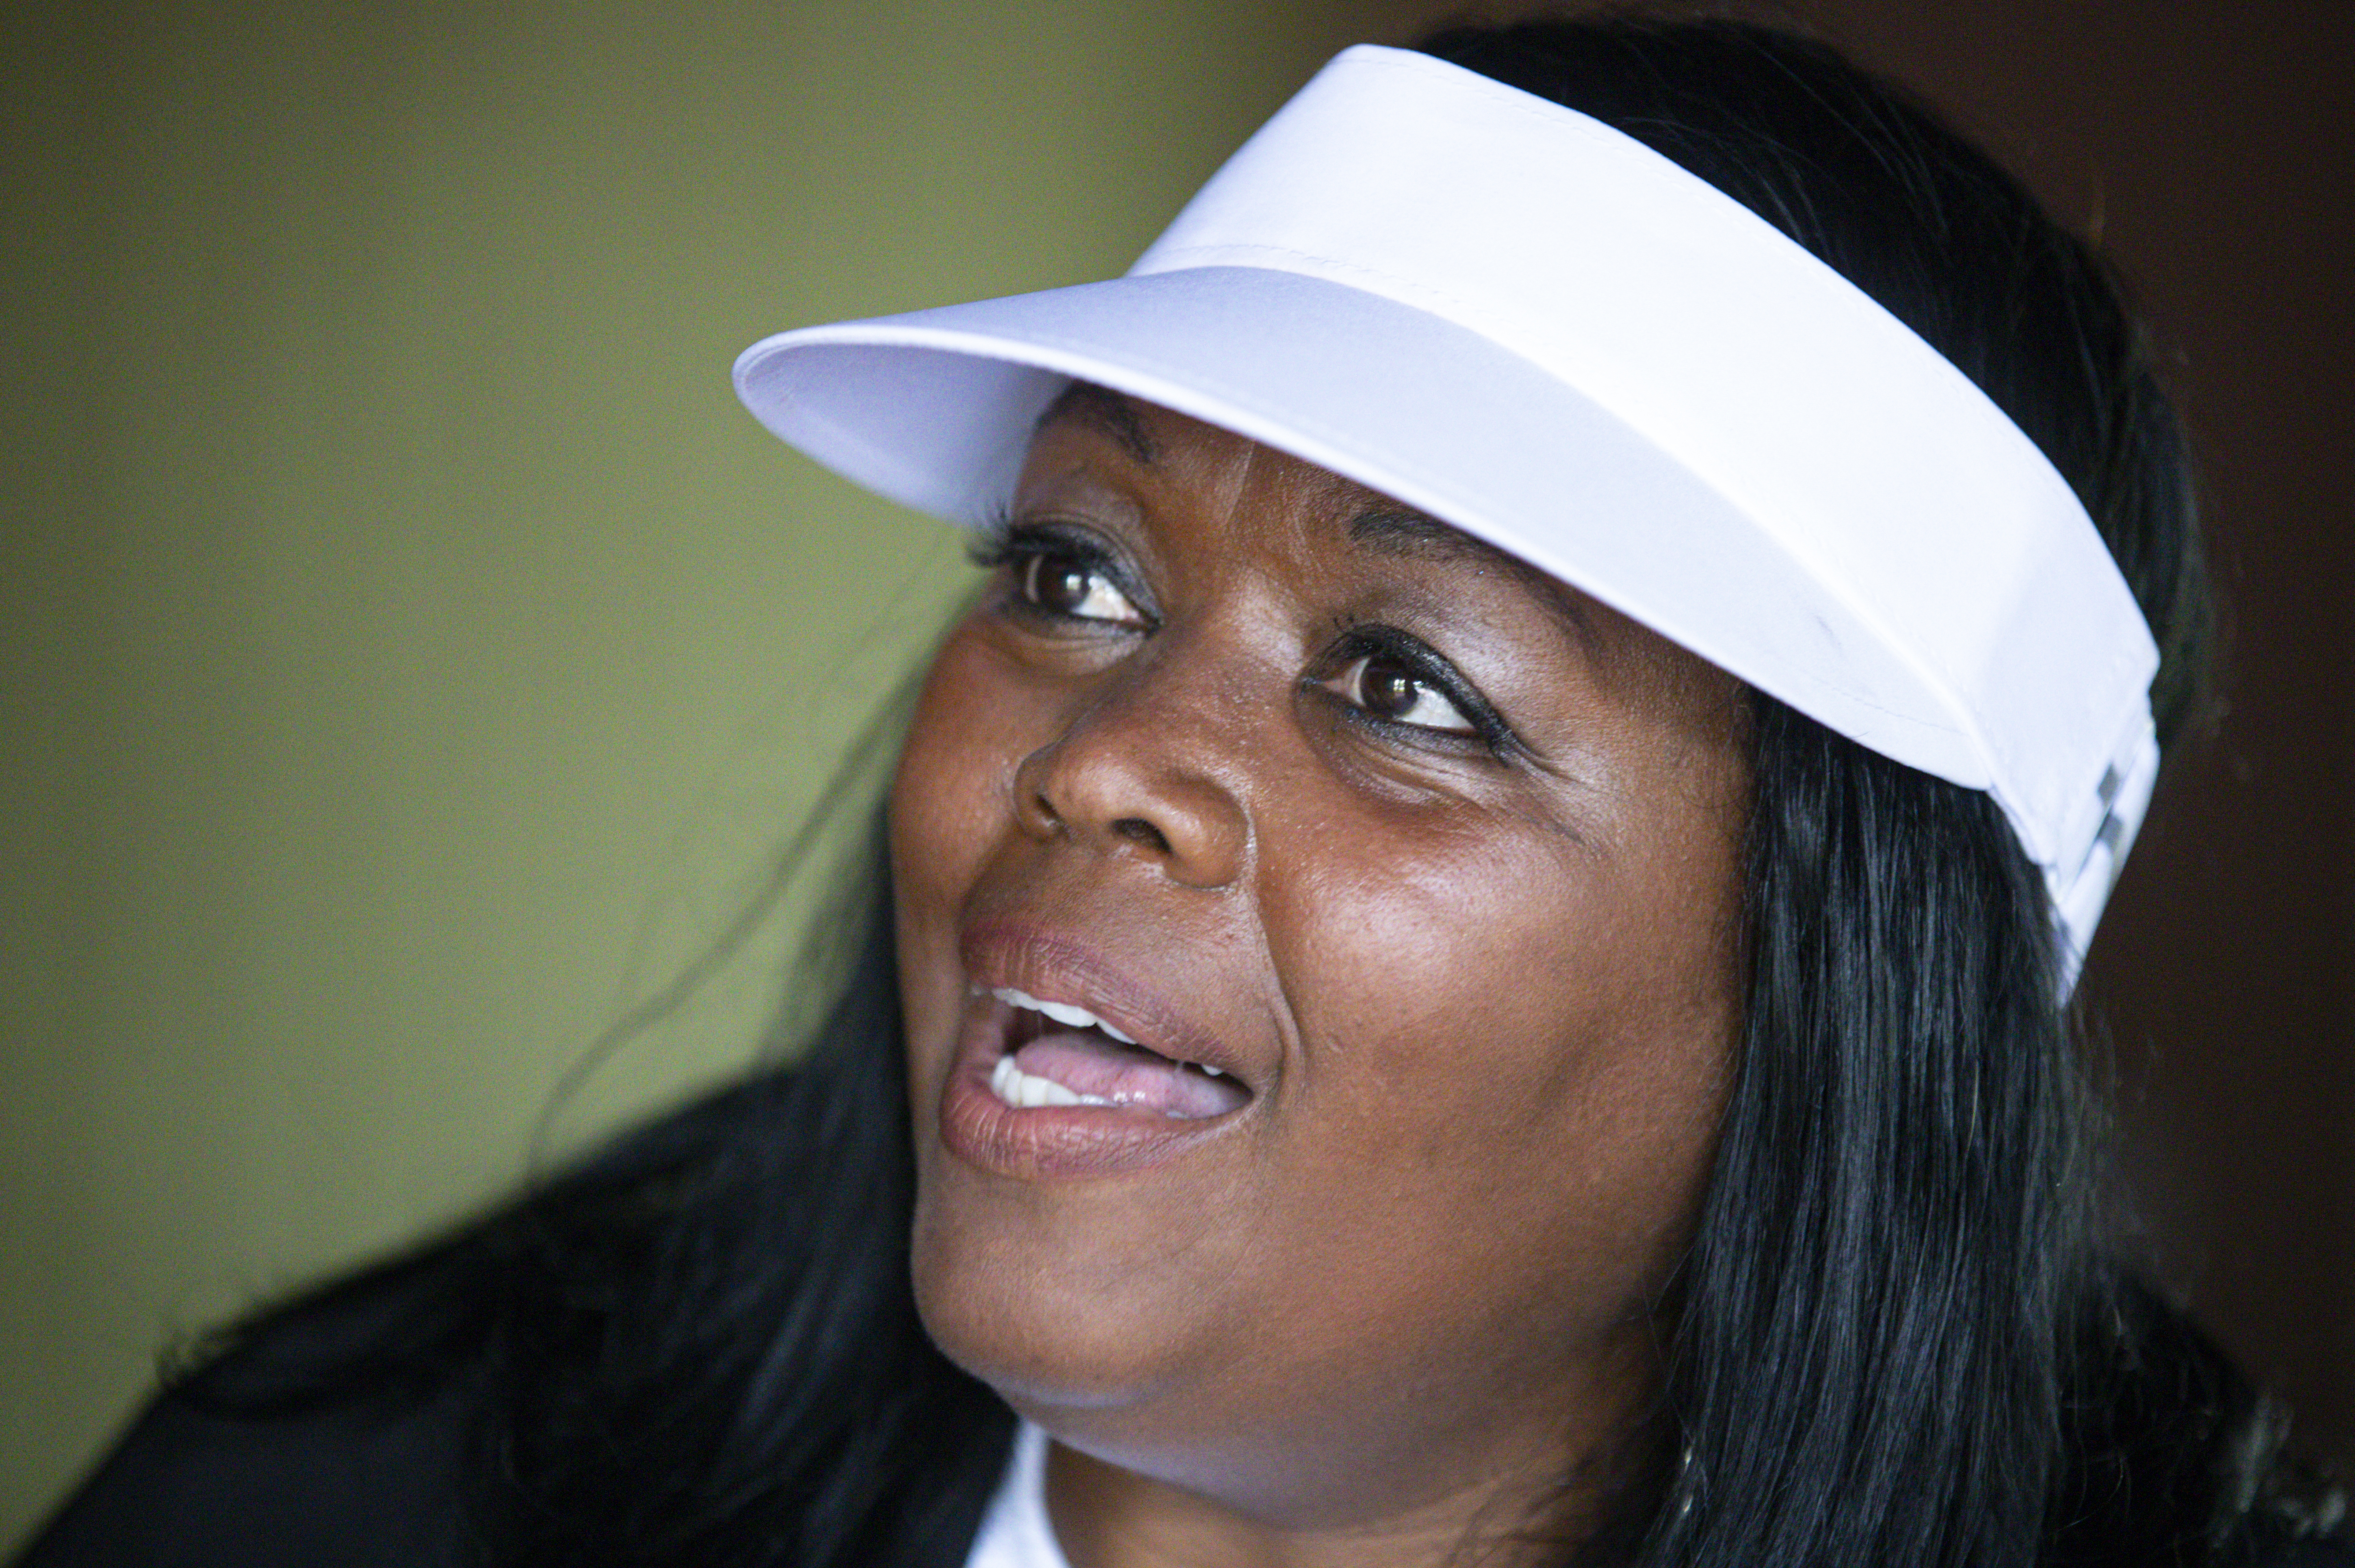 Opponent of Pences brother alleges racist threats, gunfire